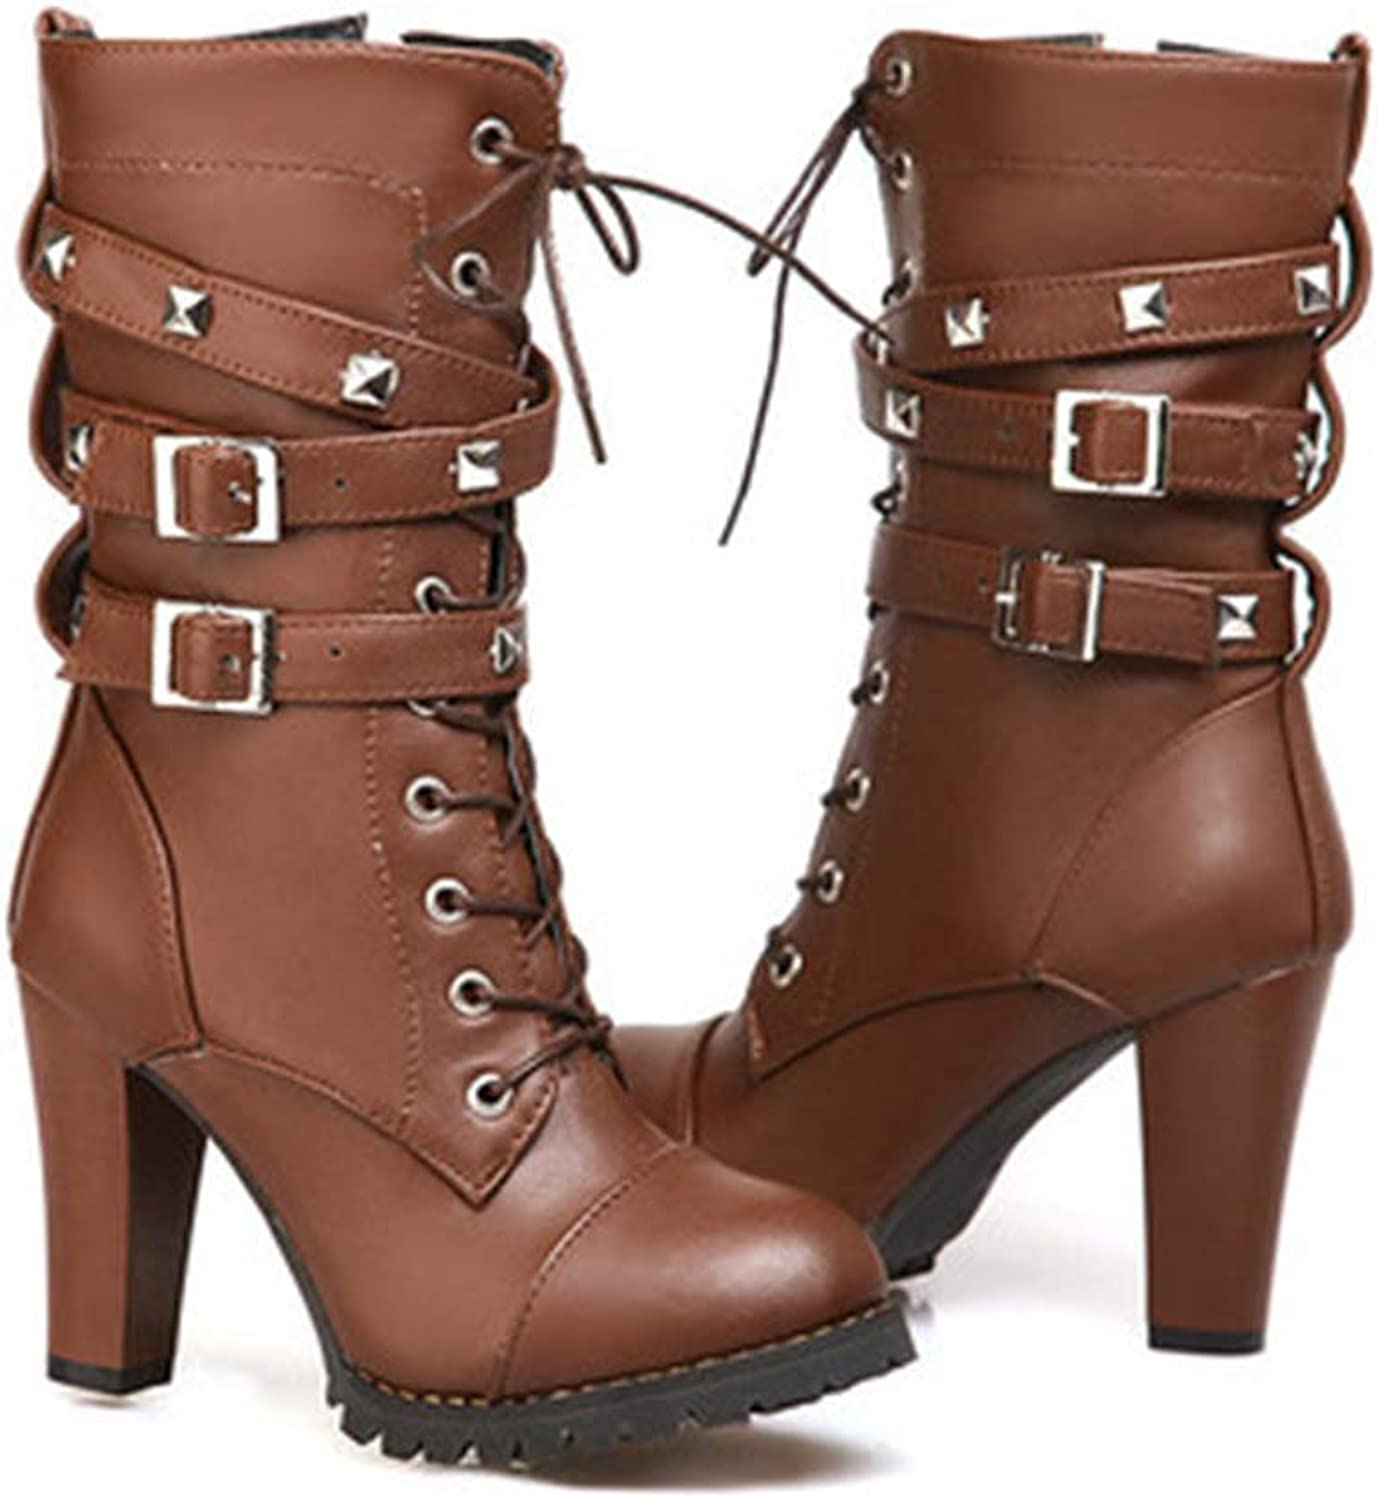 Fancyww Women Motorcycle High Heels Punk Buckle Rivet Strap Combat Military Mid Calf Boots